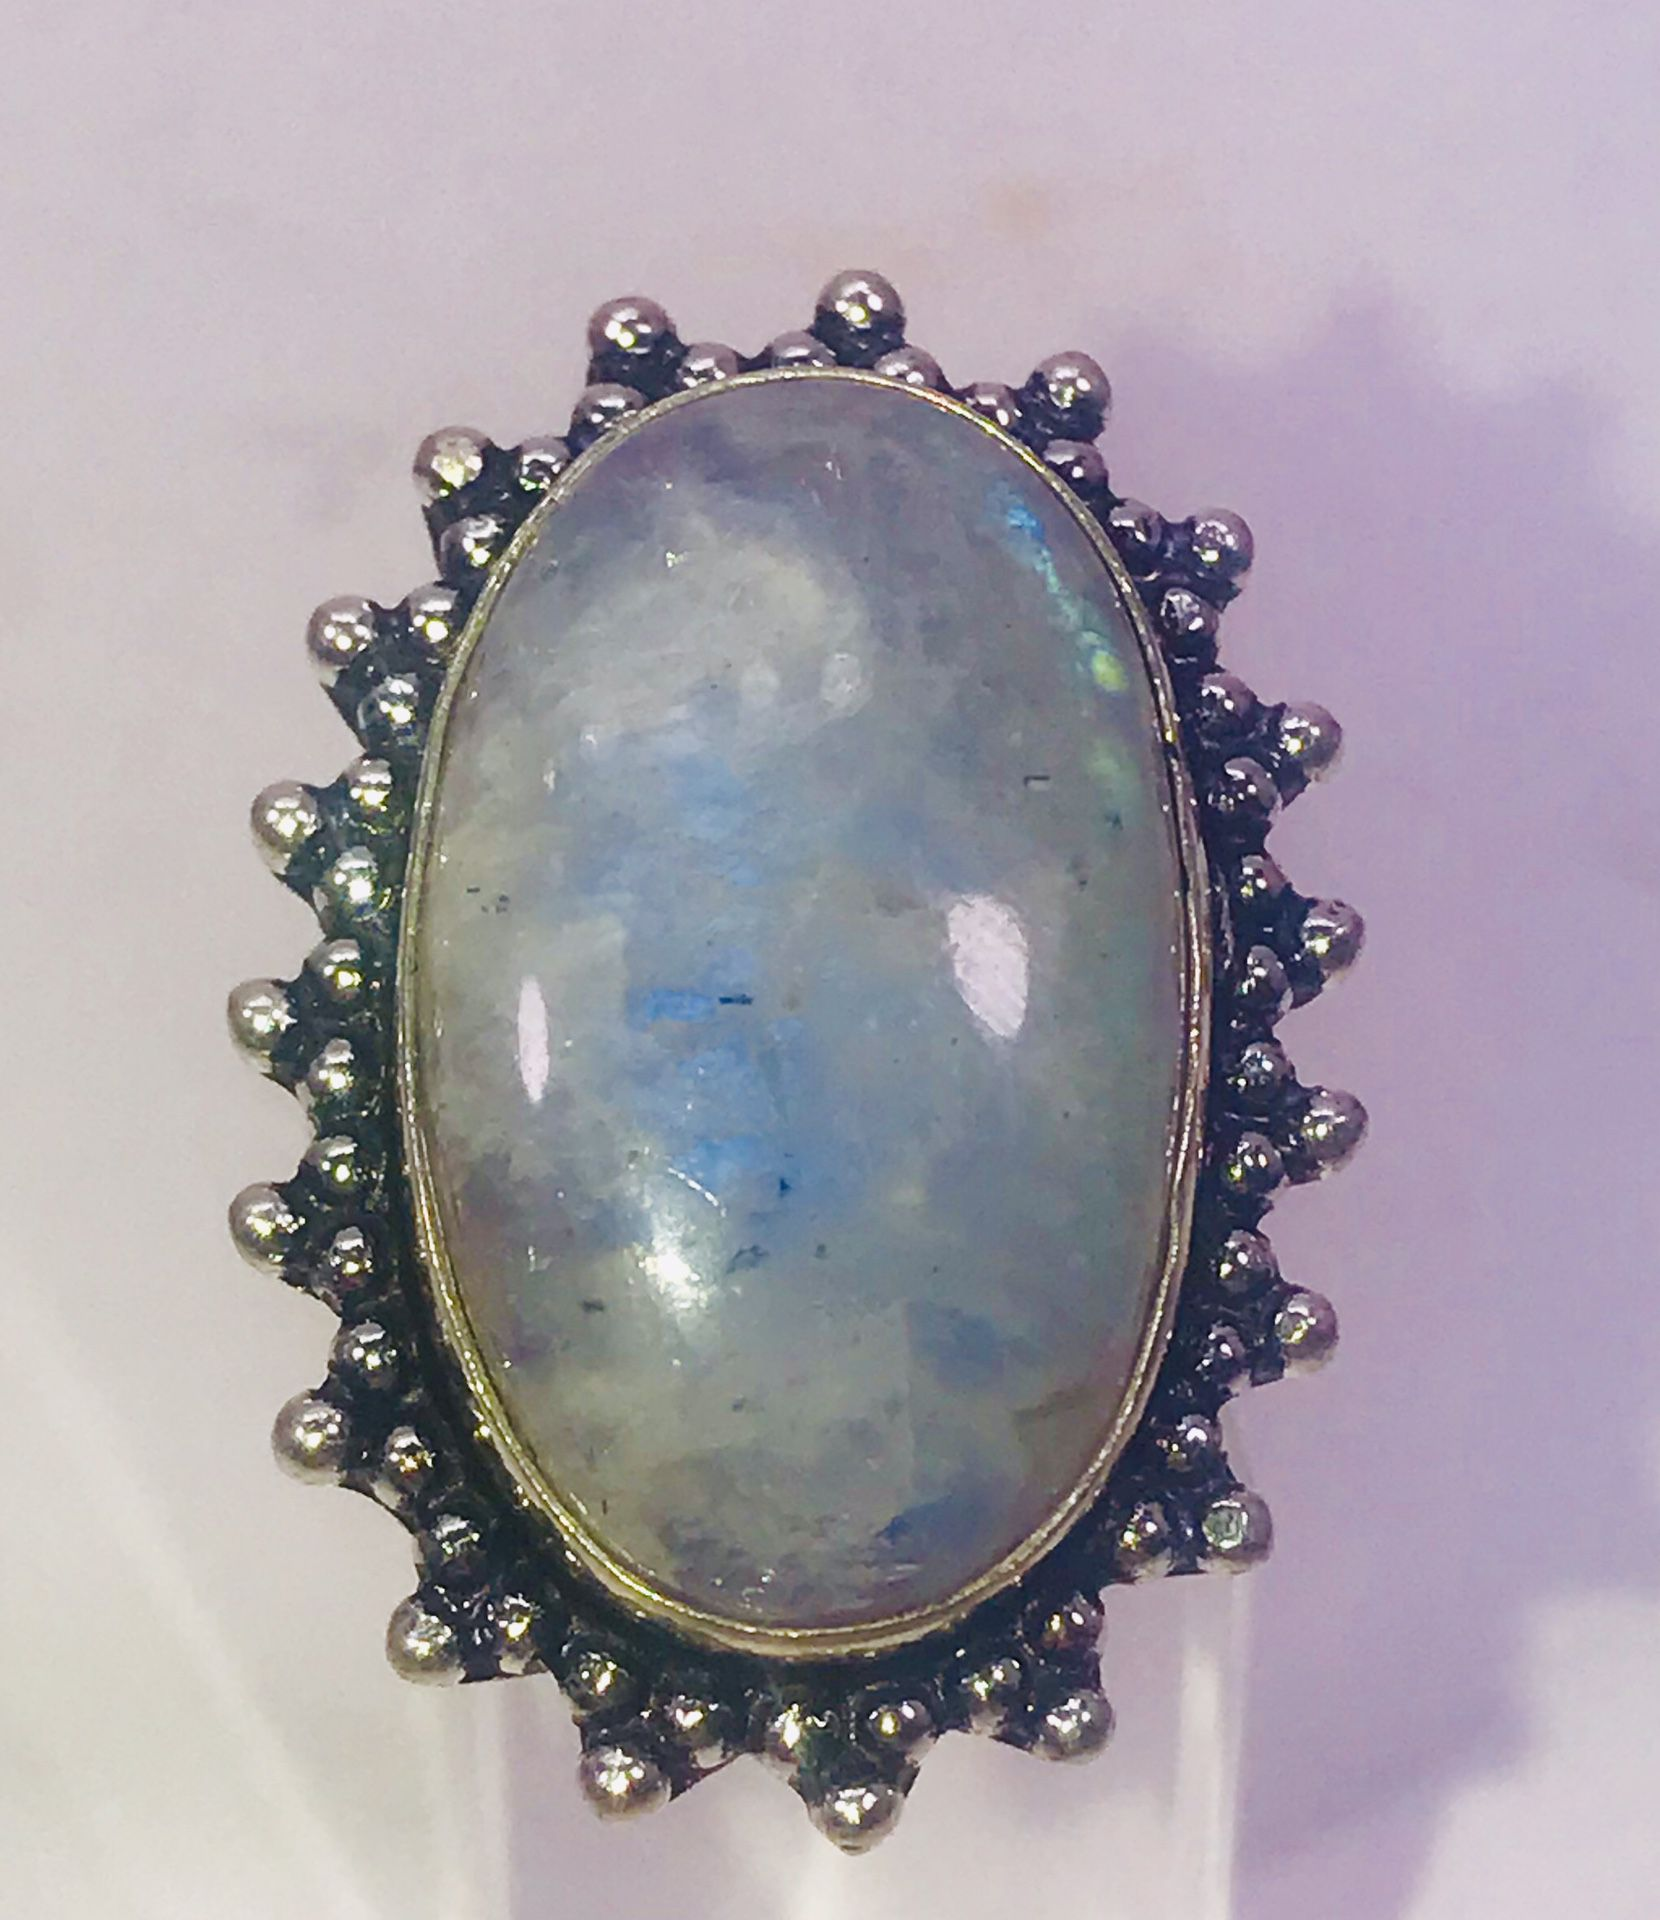 Natural fiery blue rainbow 🌈 moonstone large oval stone & .925 stamped sterling silver embellished ring size 7 NEW!